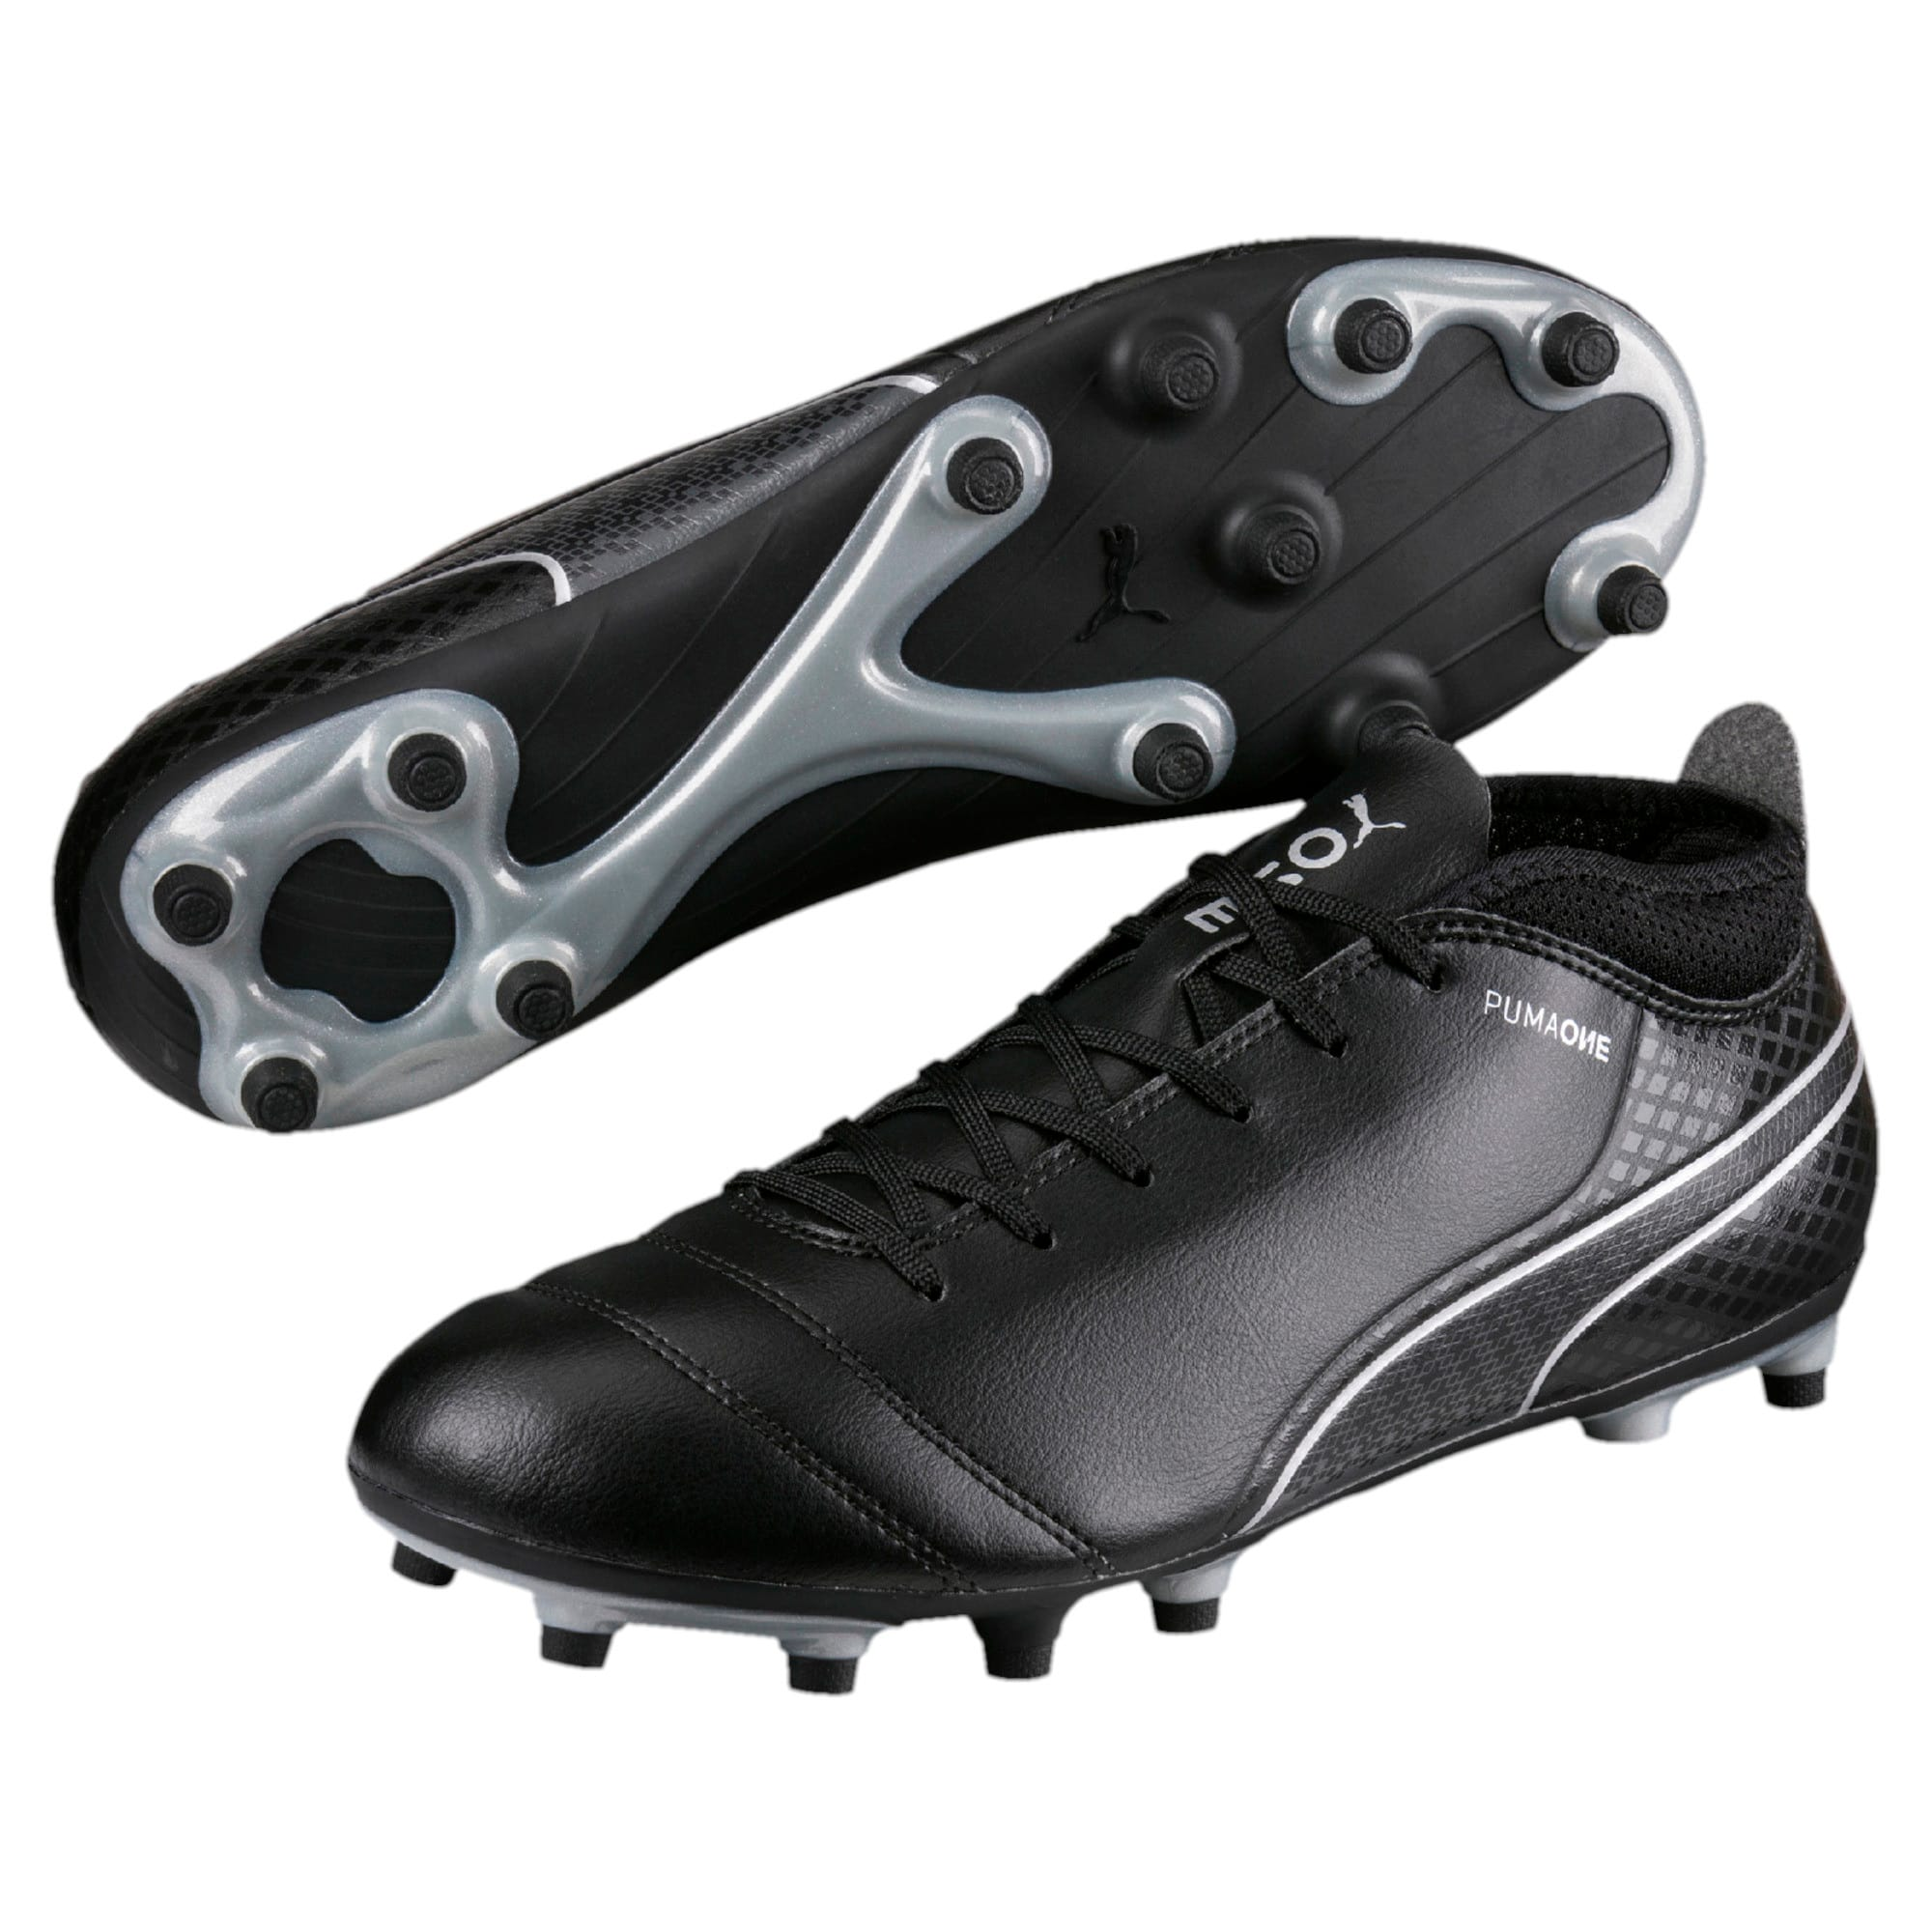 Thumbnail 6 of ONE 17.4 FG Men's Football Boots, Black-Black-Silver, medium-IND